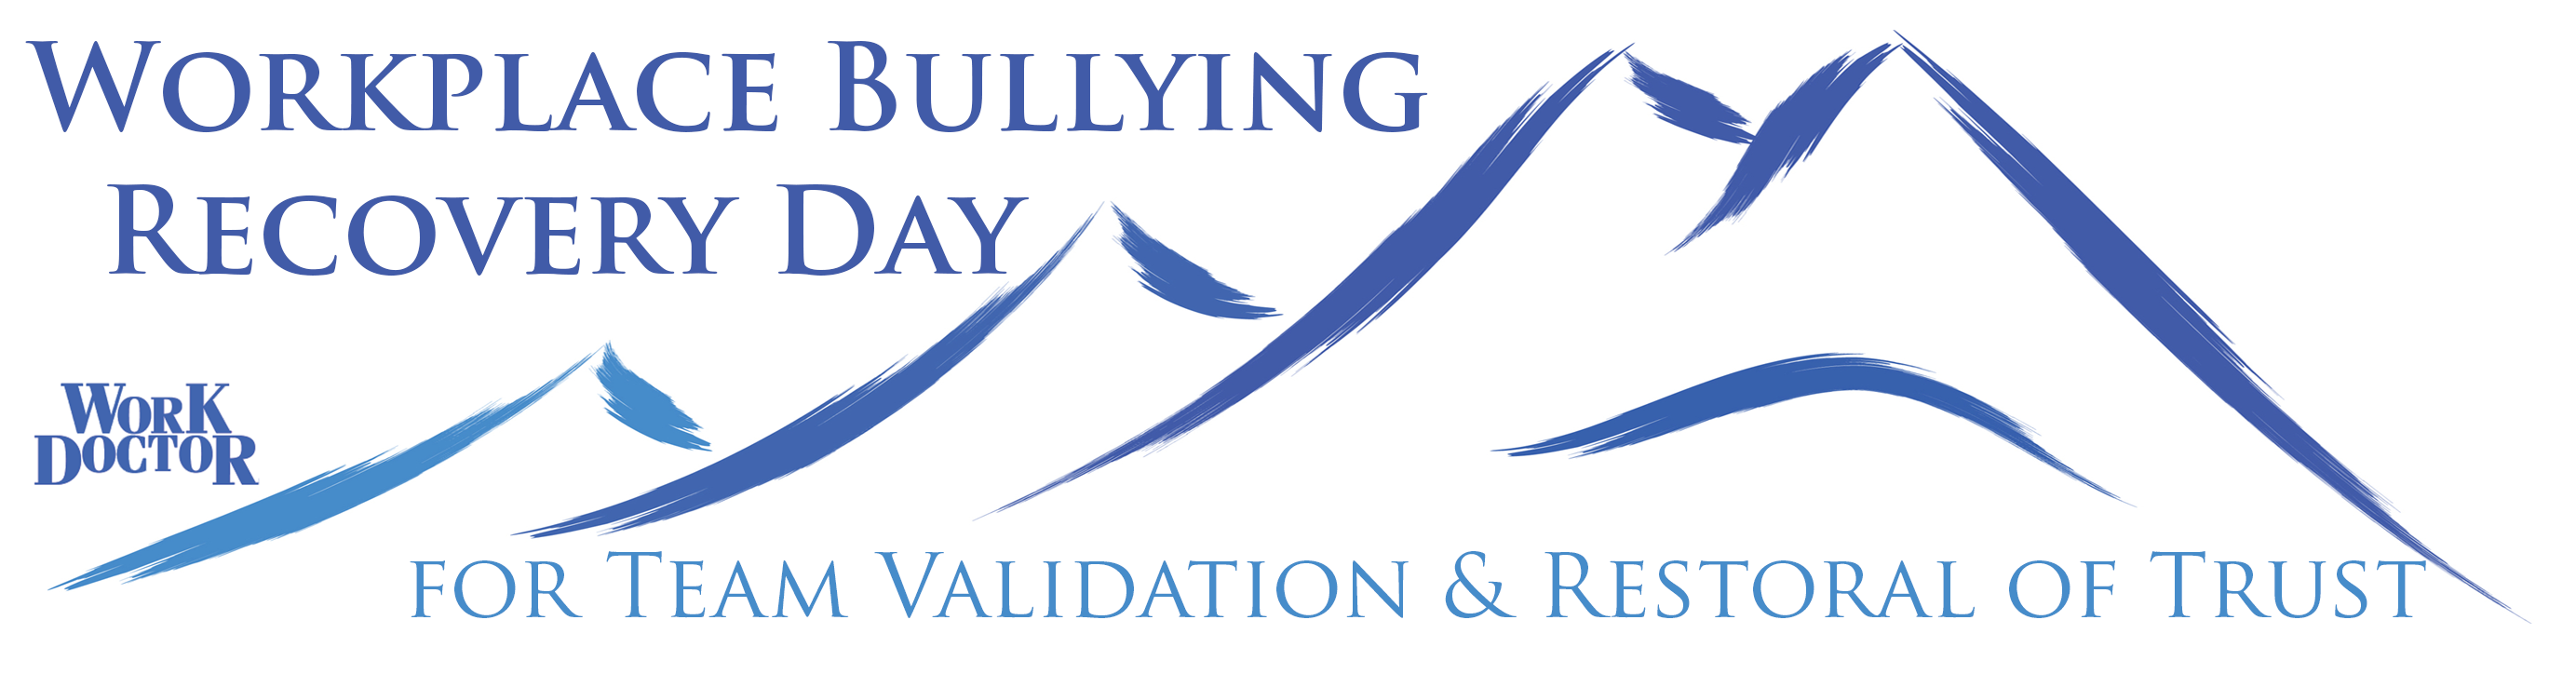 Workplace Bullying Recovery Day: For Validation and Restoral of Trust